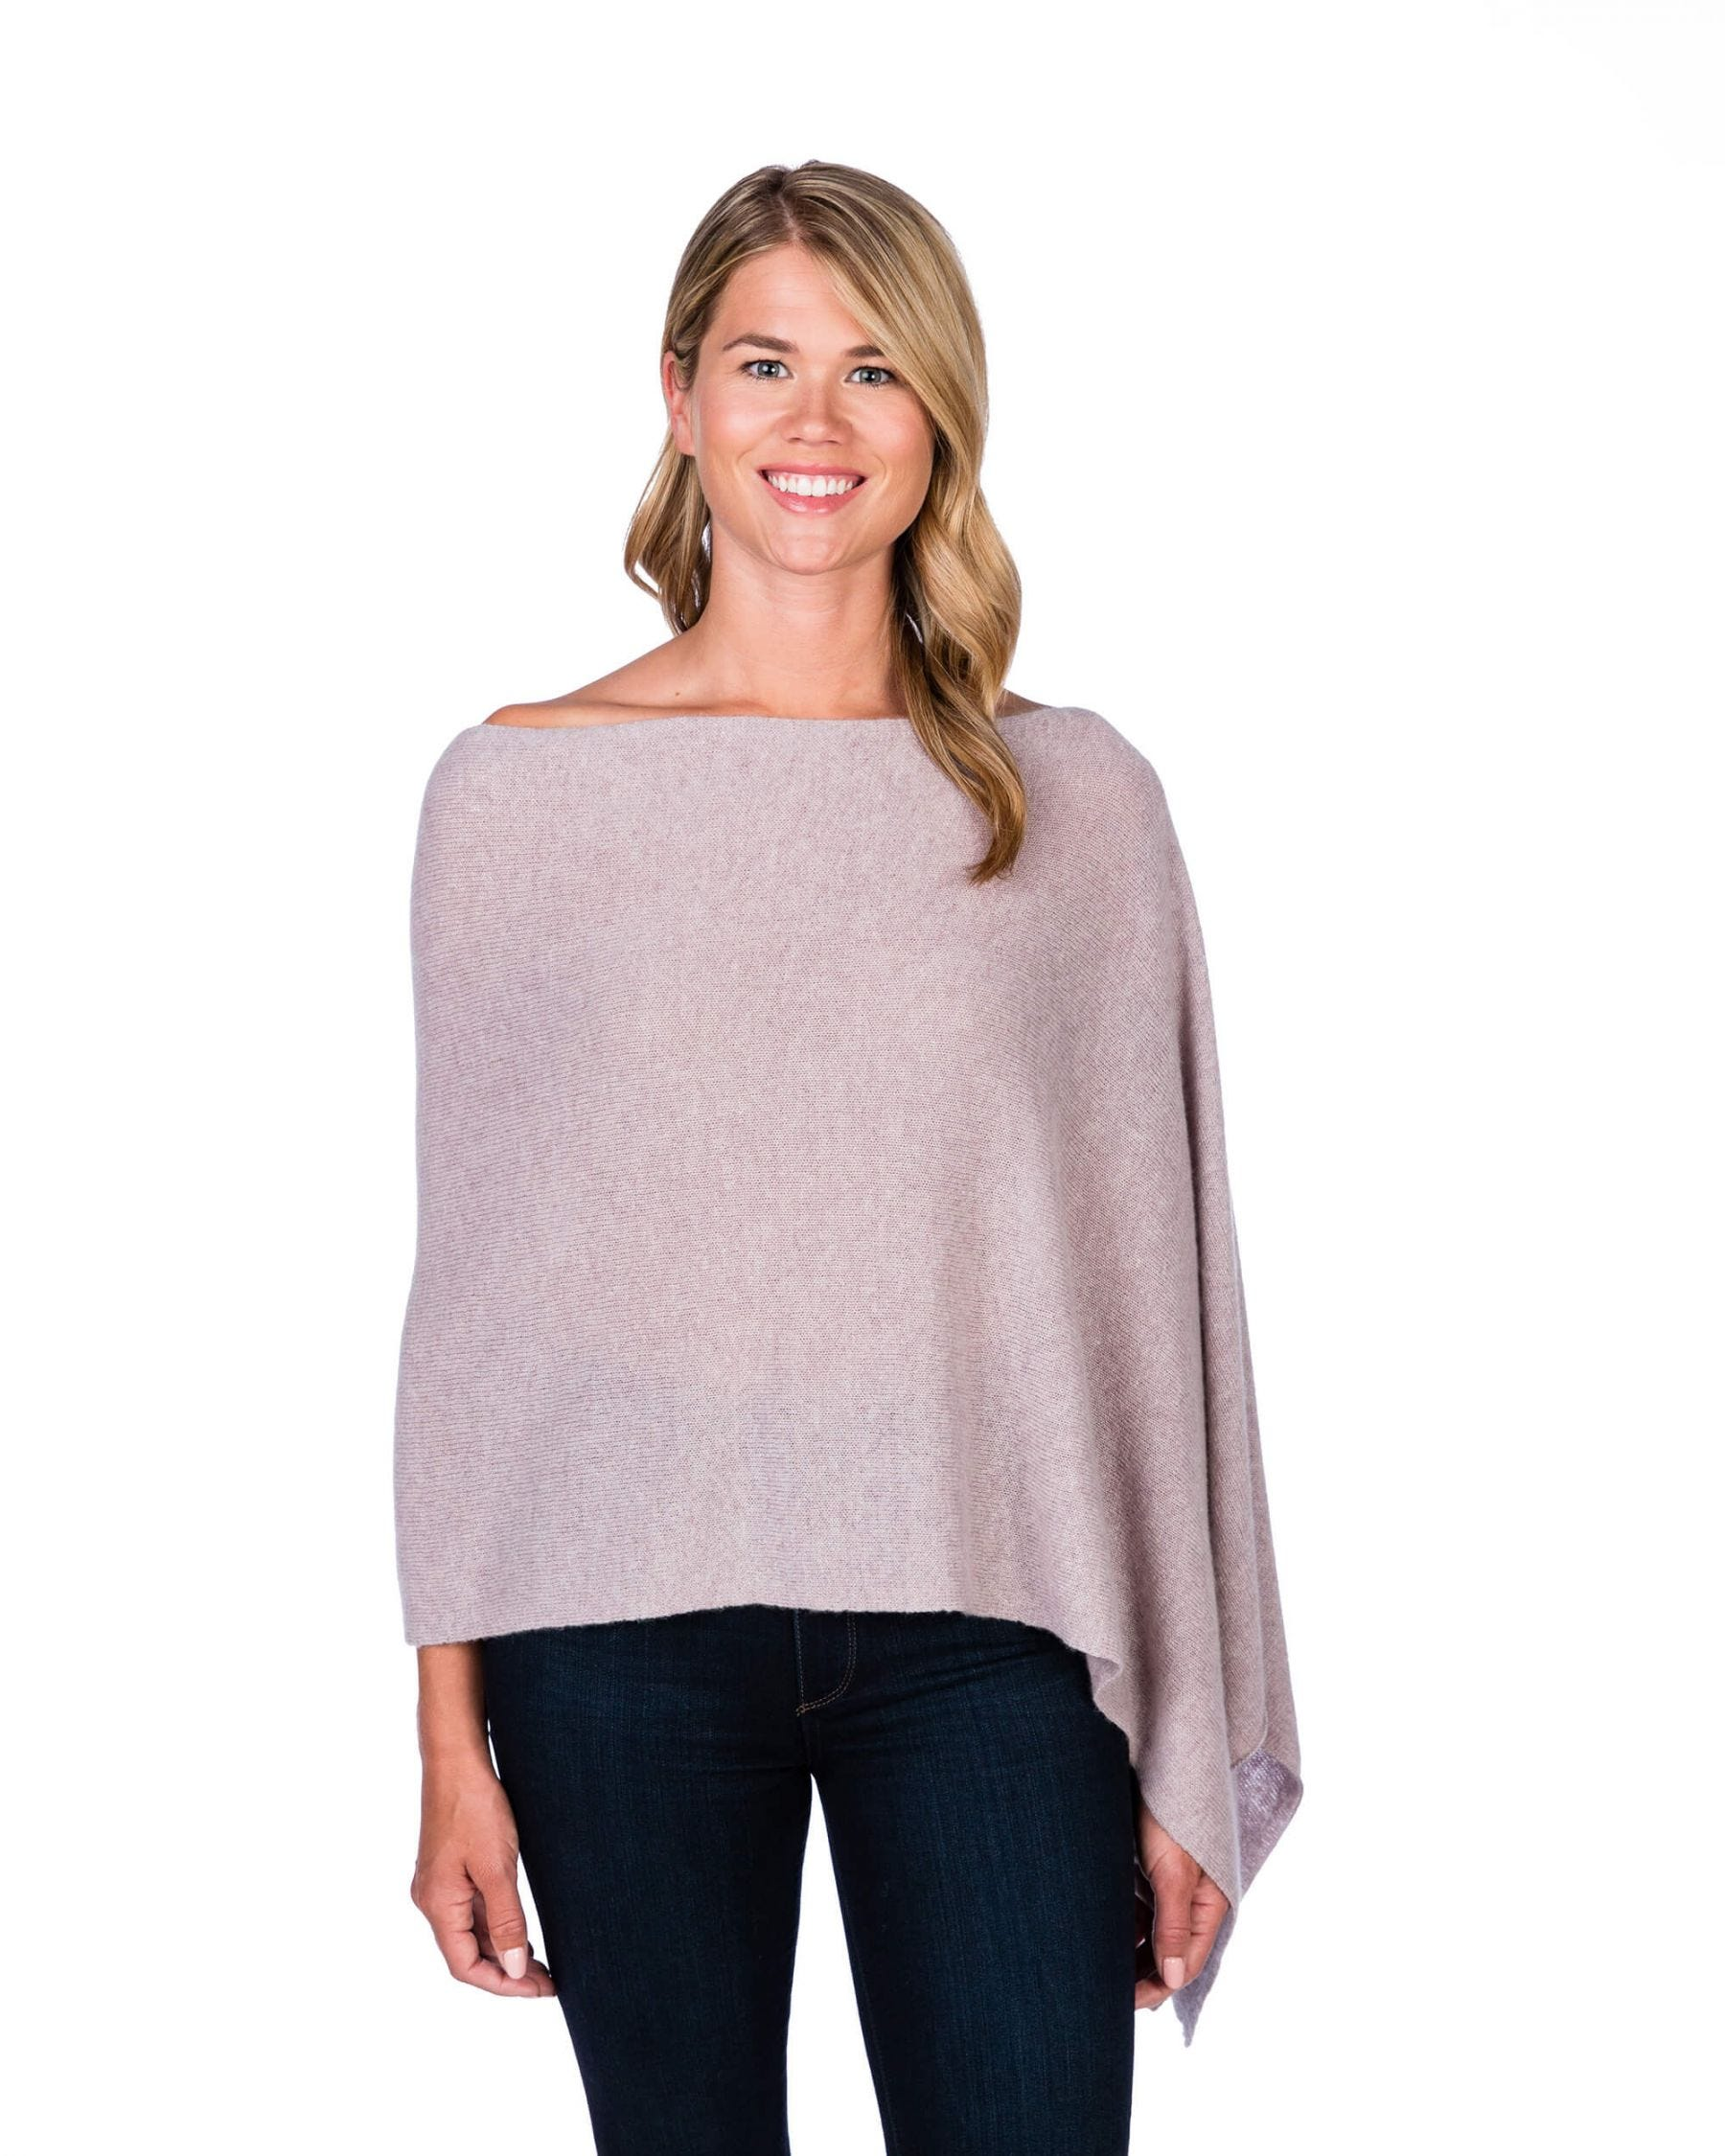 100% Cashmere Dress Topper/Poncho in Plum Ice